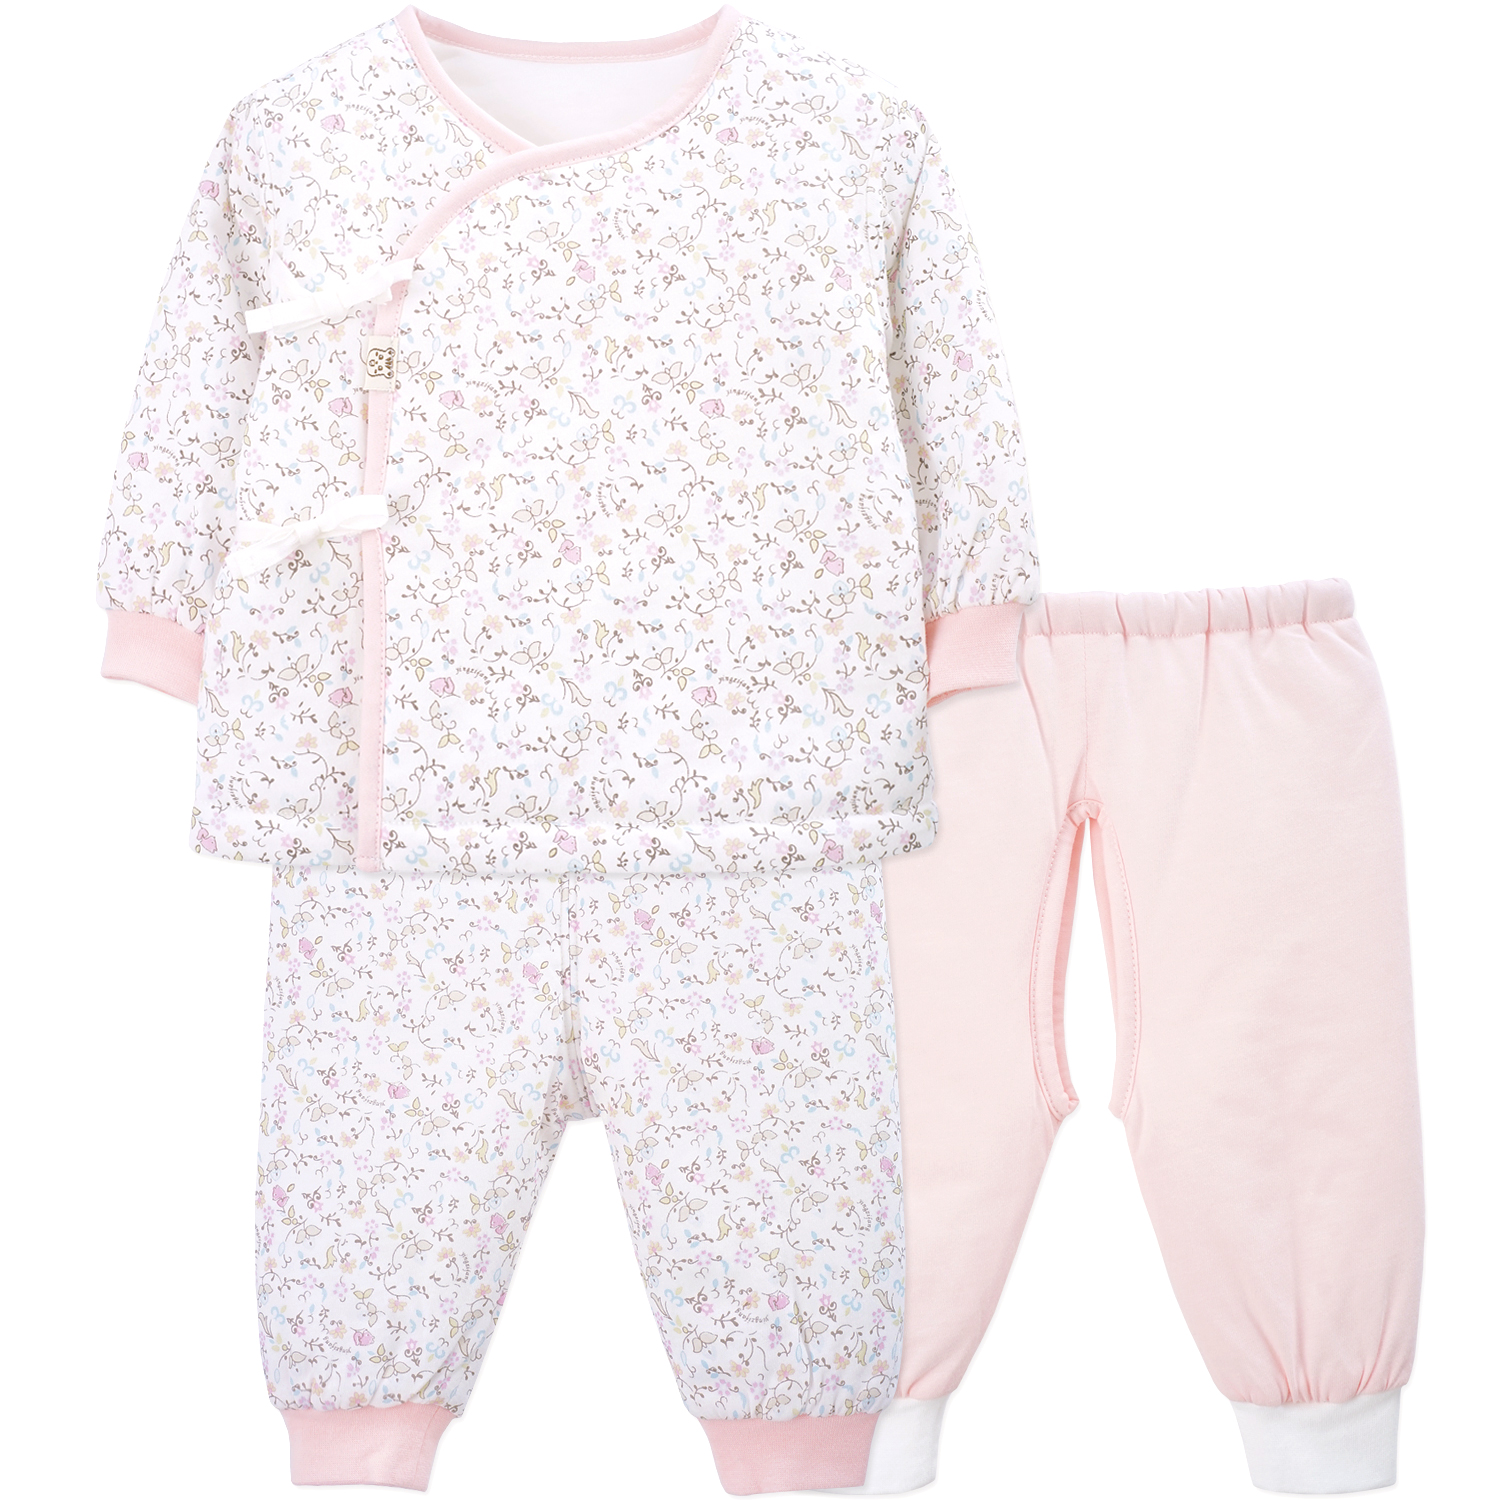 2018 Limited Newborn Clothes Yingzifang Baby Girl Clothing Infant Cotton 3 Pcs Set Clothes Long-sleeved Floral T-shirt+pants newborn baby girl boy clothes toddler bunny baby clothes set long sleeve t shirt pants hat 3 pcs set 2017 new arriavl ff014